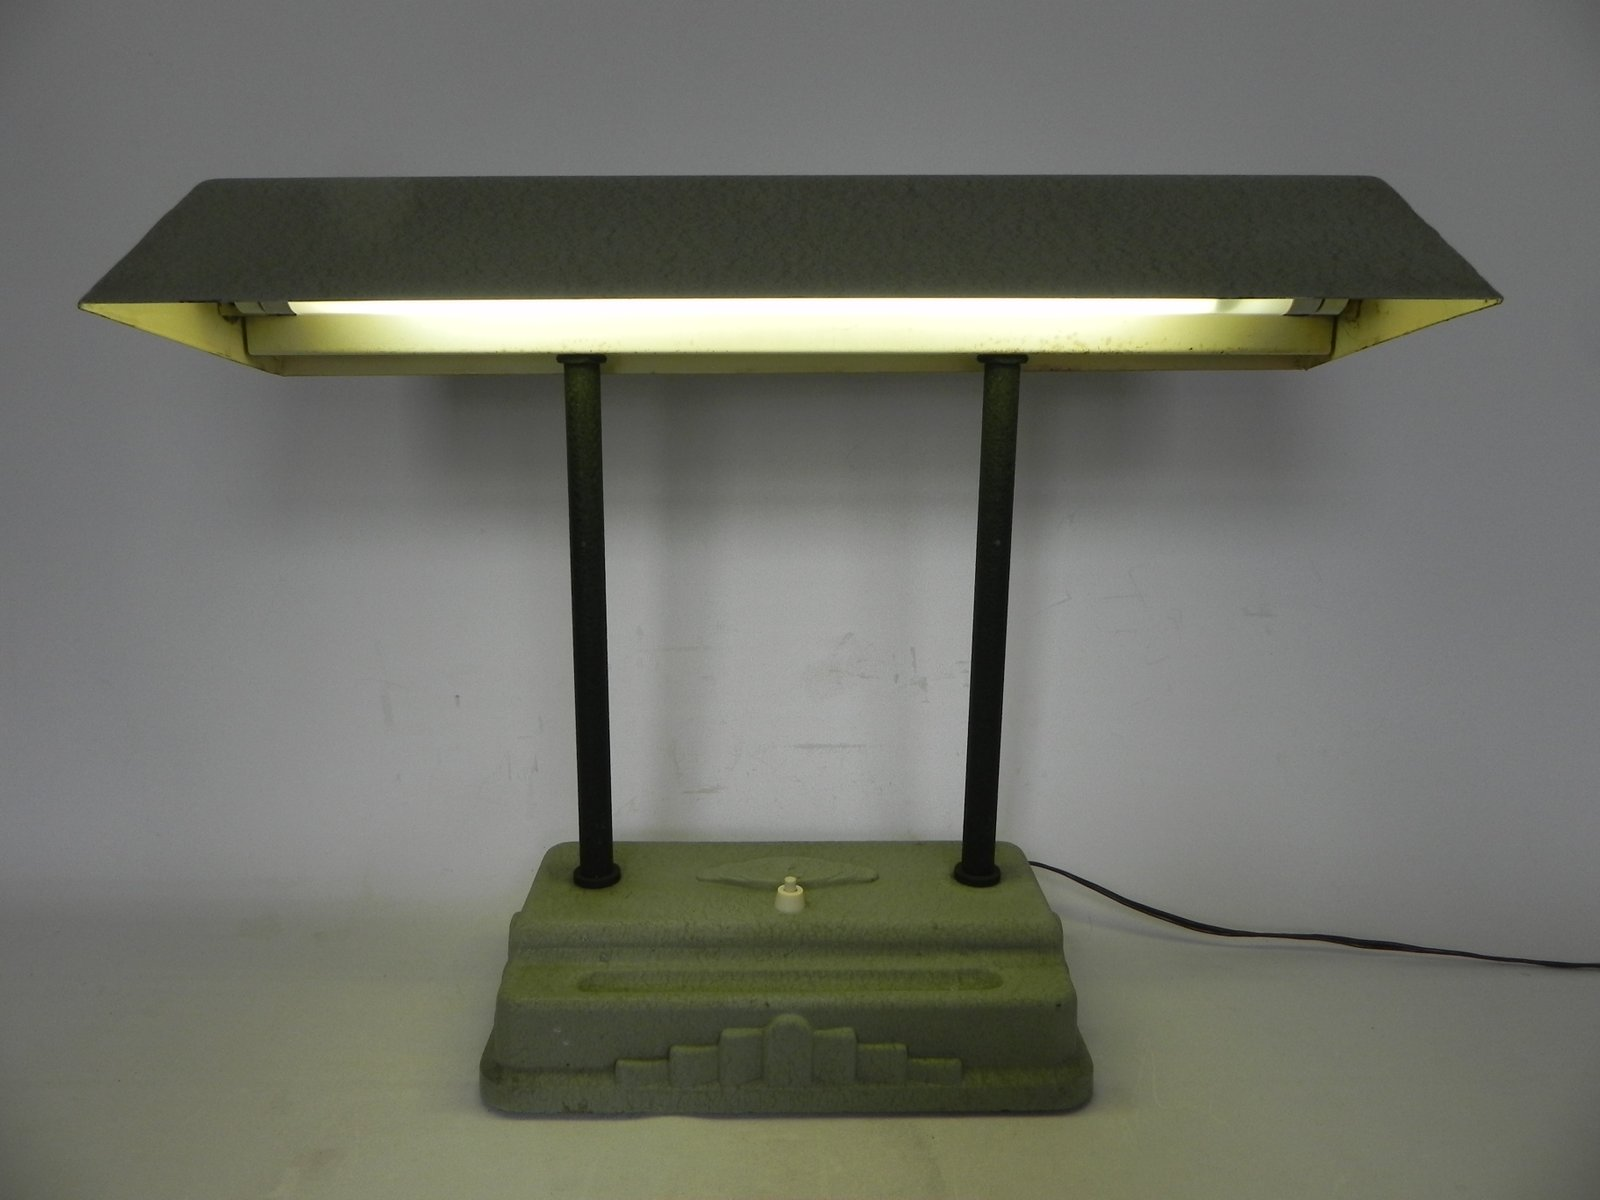 Art Deco Desk Lamp From Sevadac 1930s